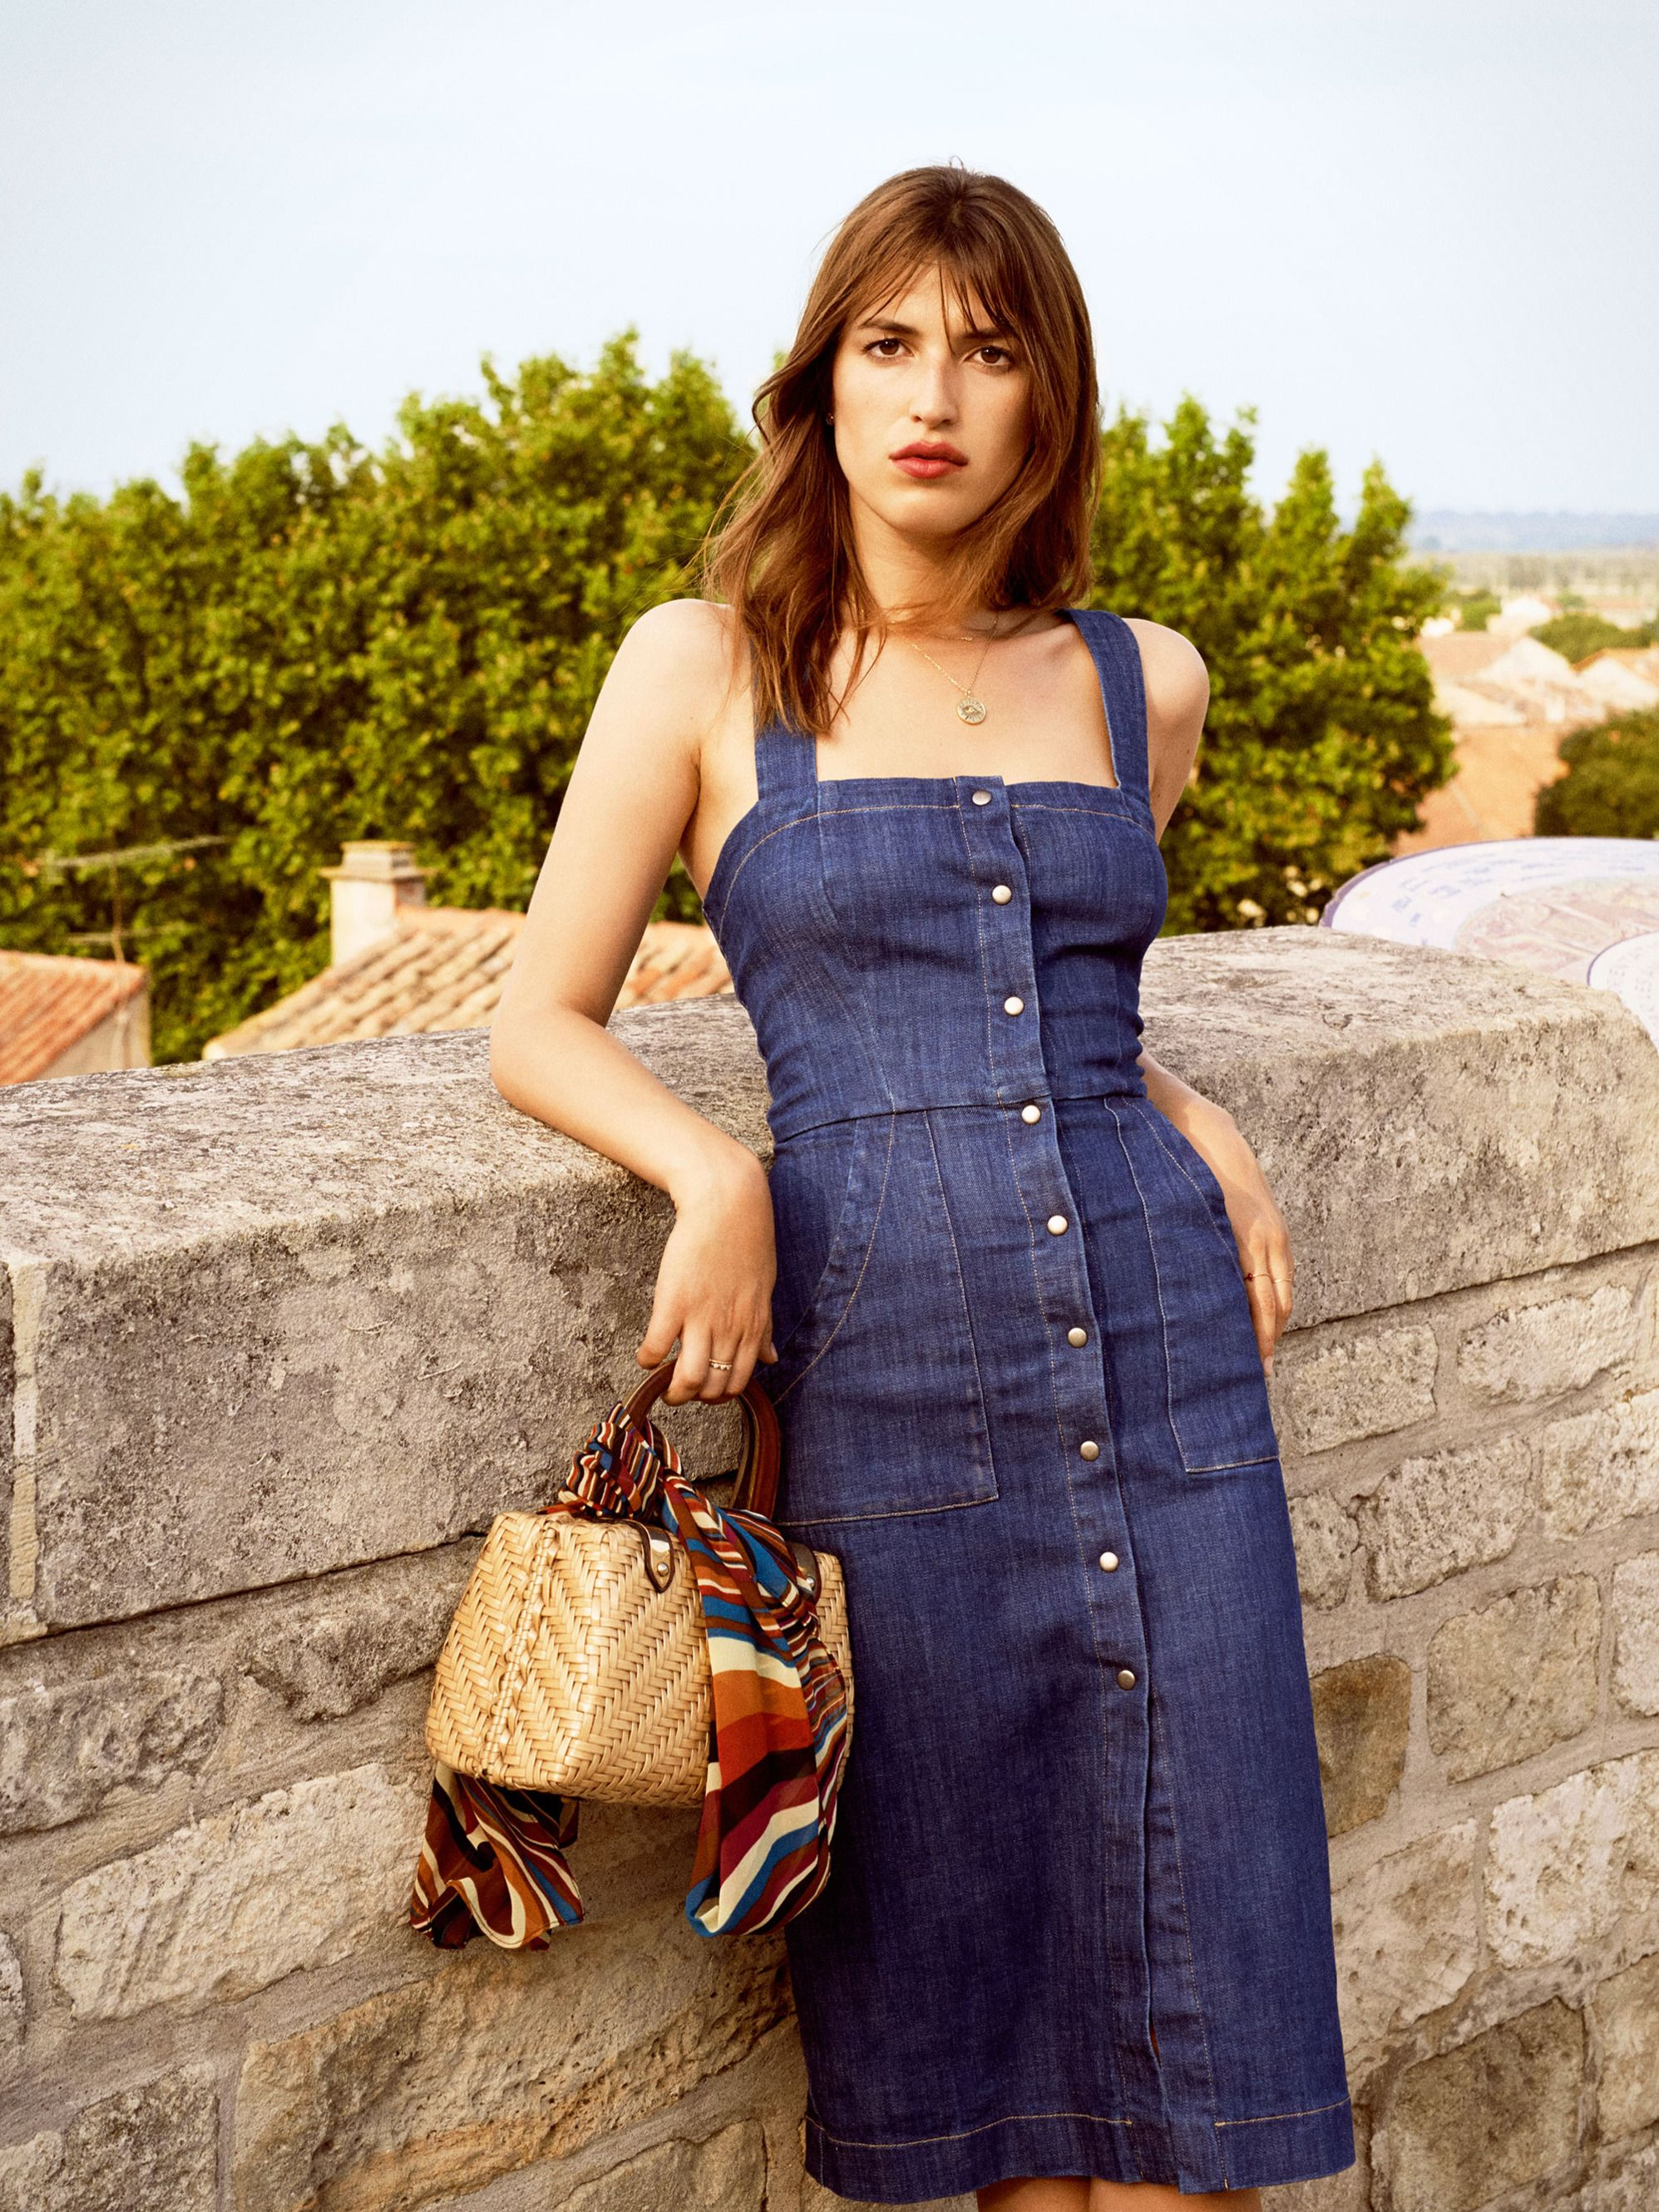 e451aa770b 6 Style Lessons from a French It-Girl  Reformation x Jeanne Damas. Wear  this  70s-inspired denim button-down with platform heels and no-fuss hair.